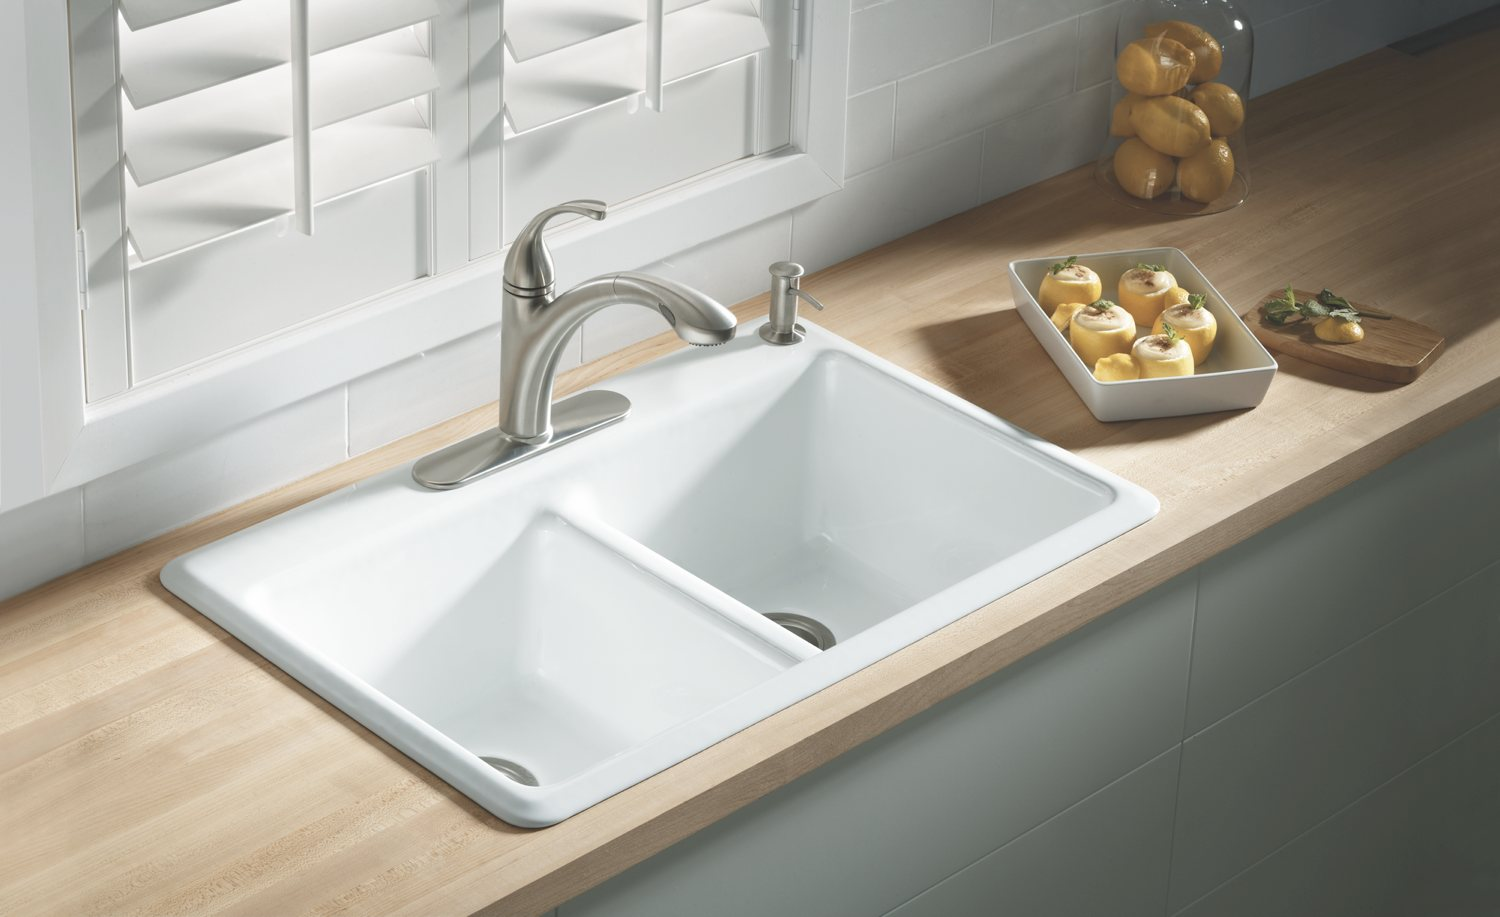 white kitchen sink faucet images amp pictures becuo white kitchen sink faucet images amp pictures becuo